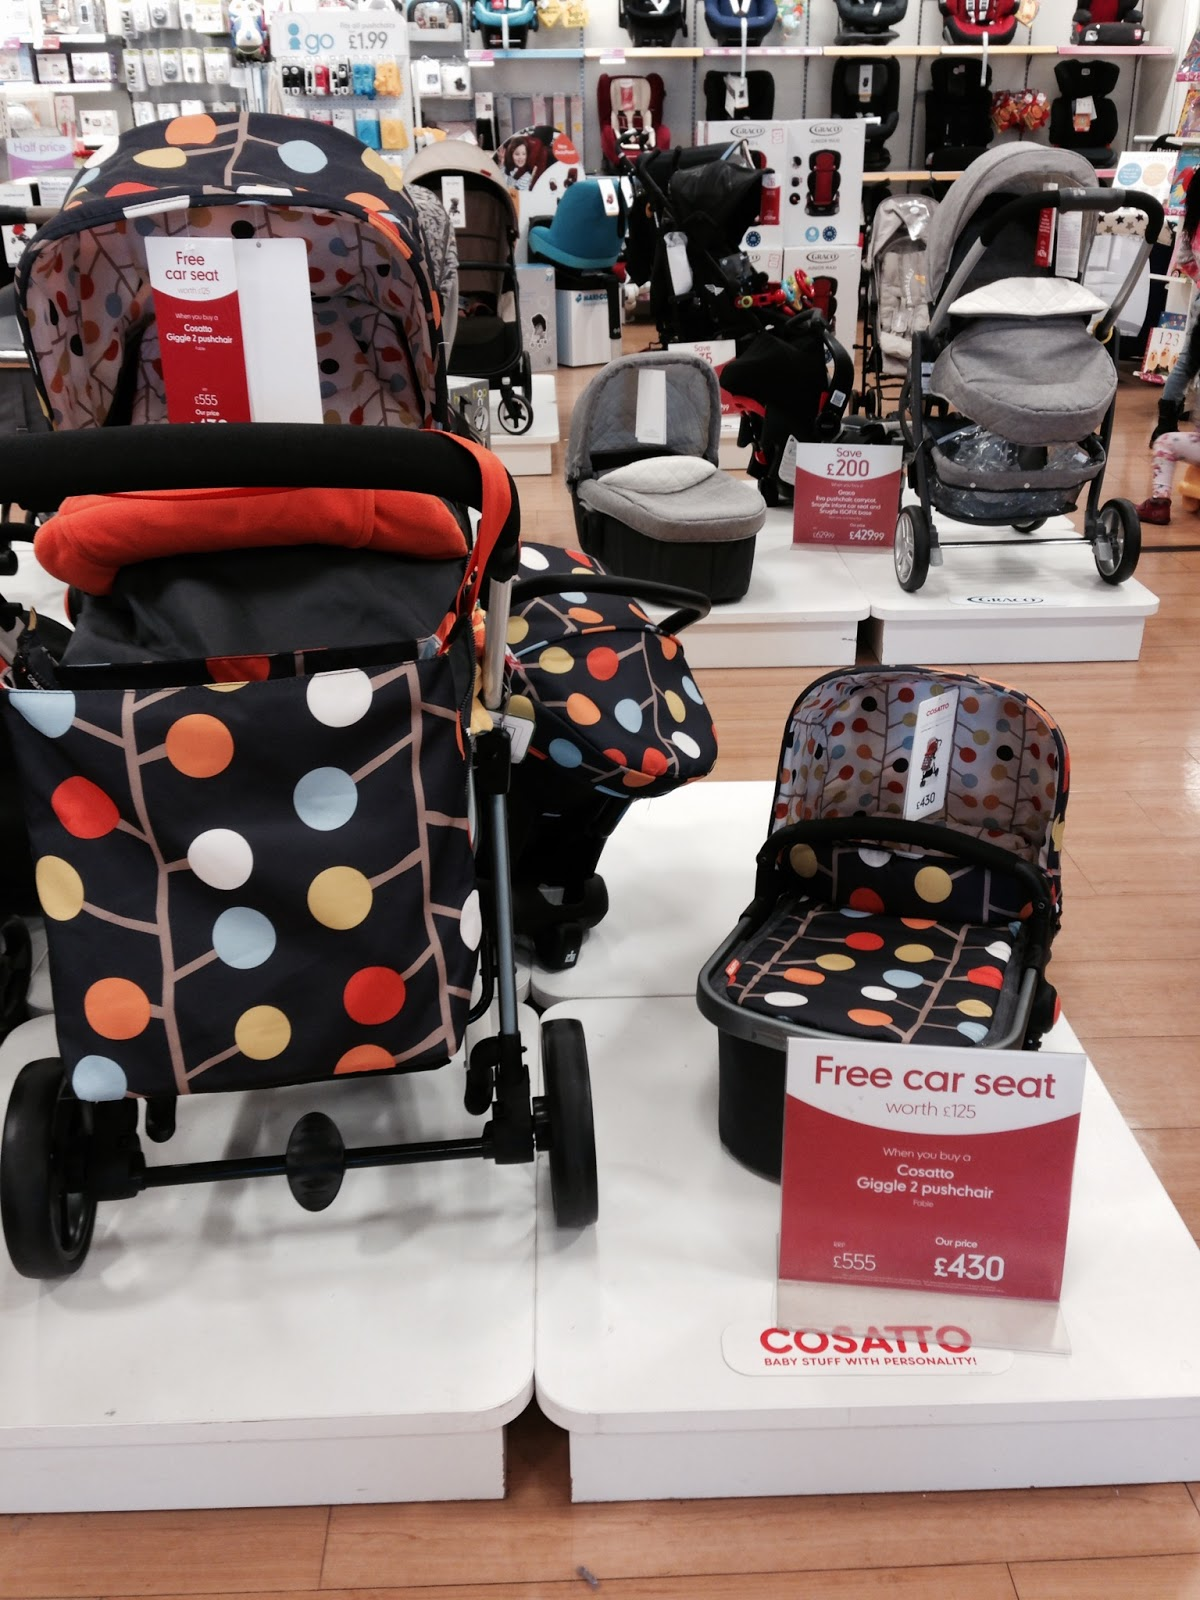 827fa082f1e6 mama lucy  Deal  Cosatto Giggle 2 Pram System on Offer  Mothercare